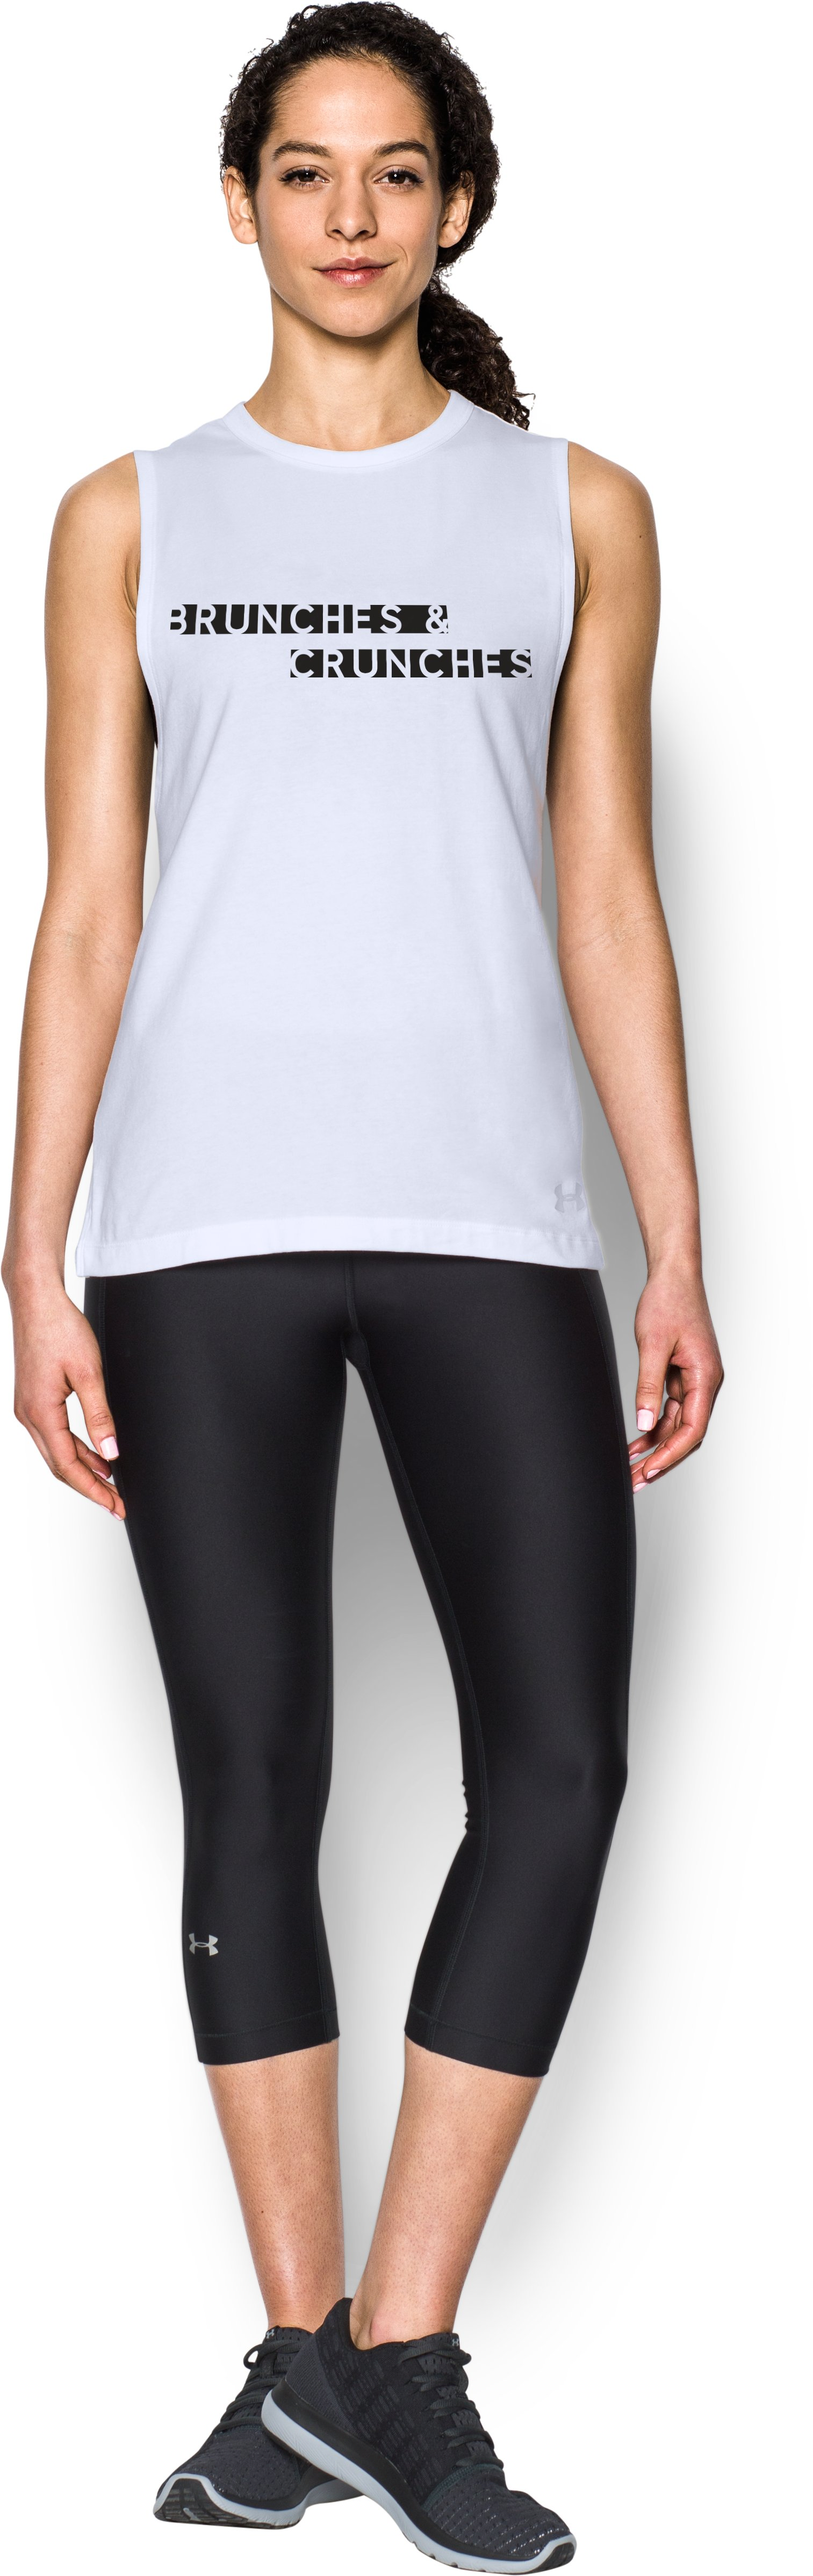 Women's UA Brunch Crunch Muscle T, White, zoomed image